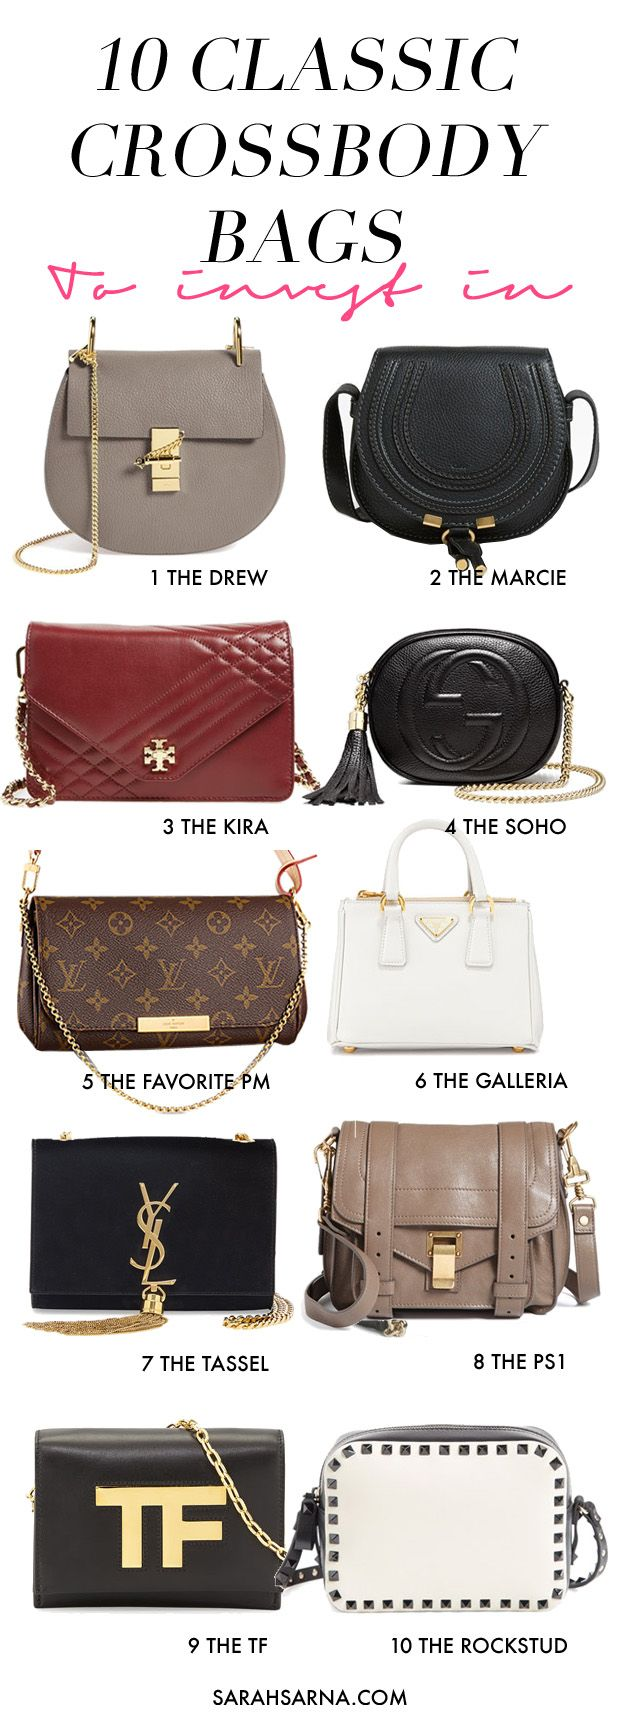 bd273677c081 10 Classic Crossbody Bags to Invest In. Designer favorites from Chloe